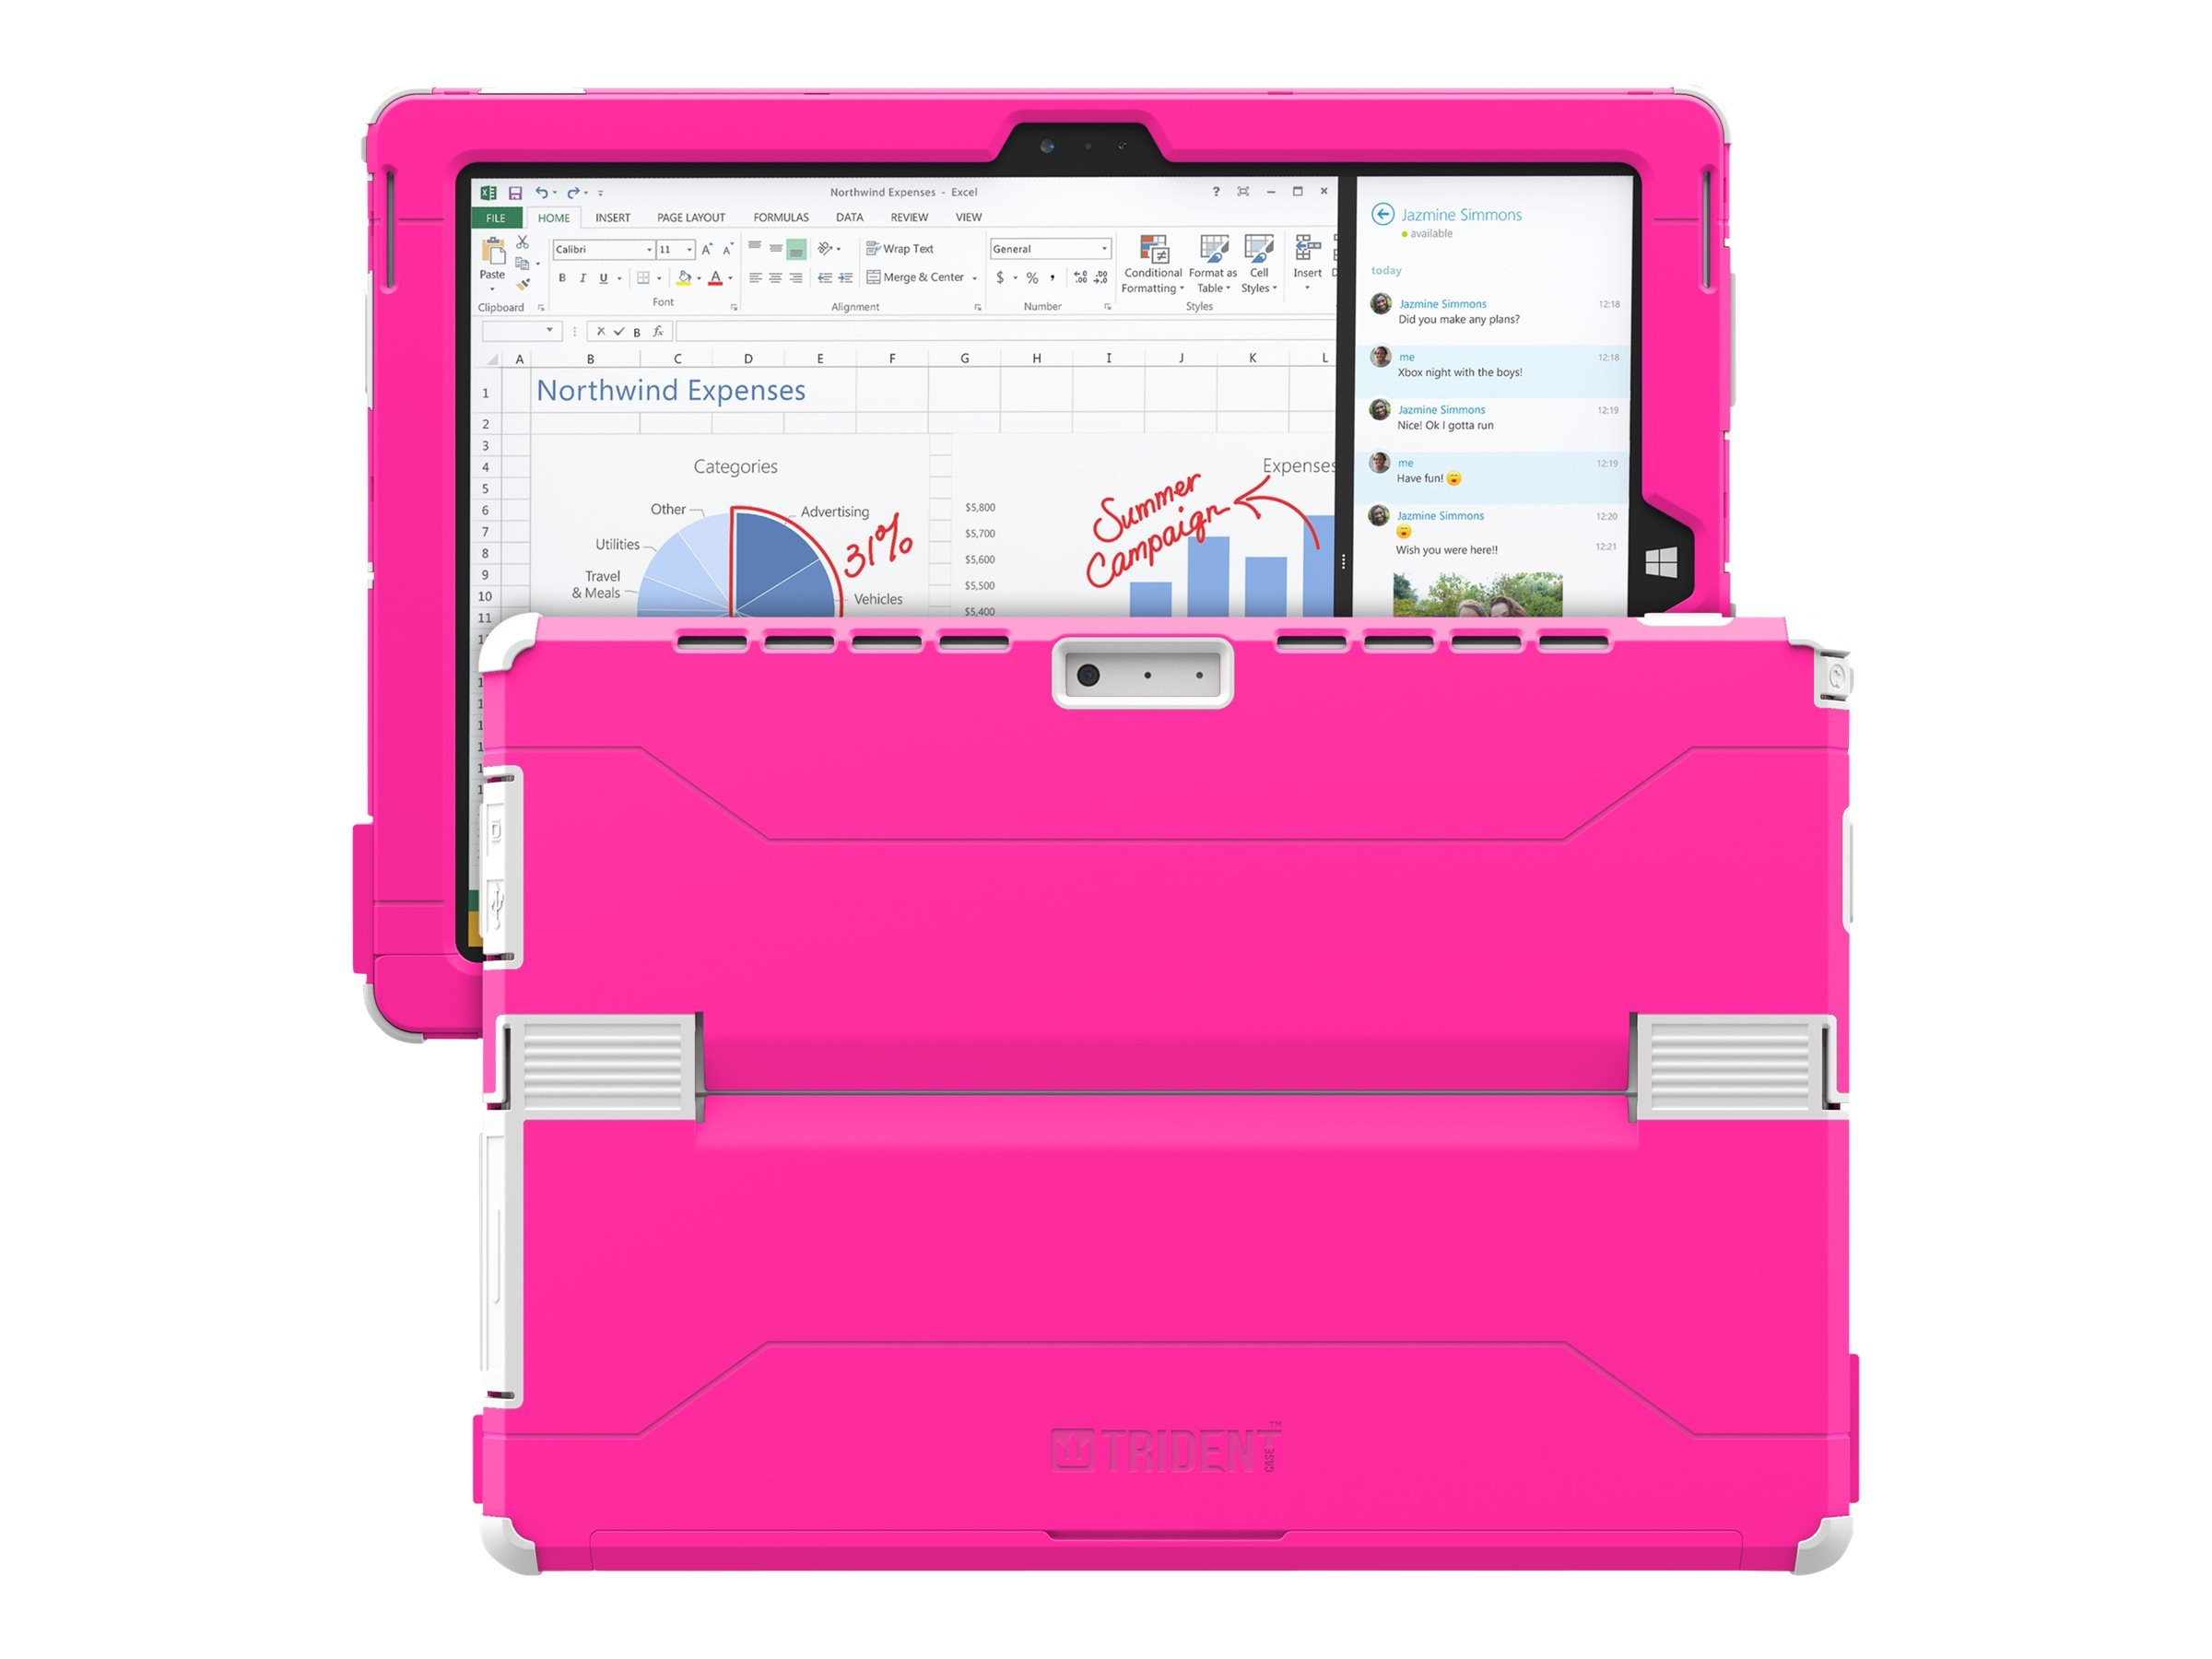 Trident Case Cyclops 2014 Case for Microsoft Surface Pro 3, Pink, CY-MSSFP3-PK000, 18531900, Carrying Cases - Tablets & eReaders